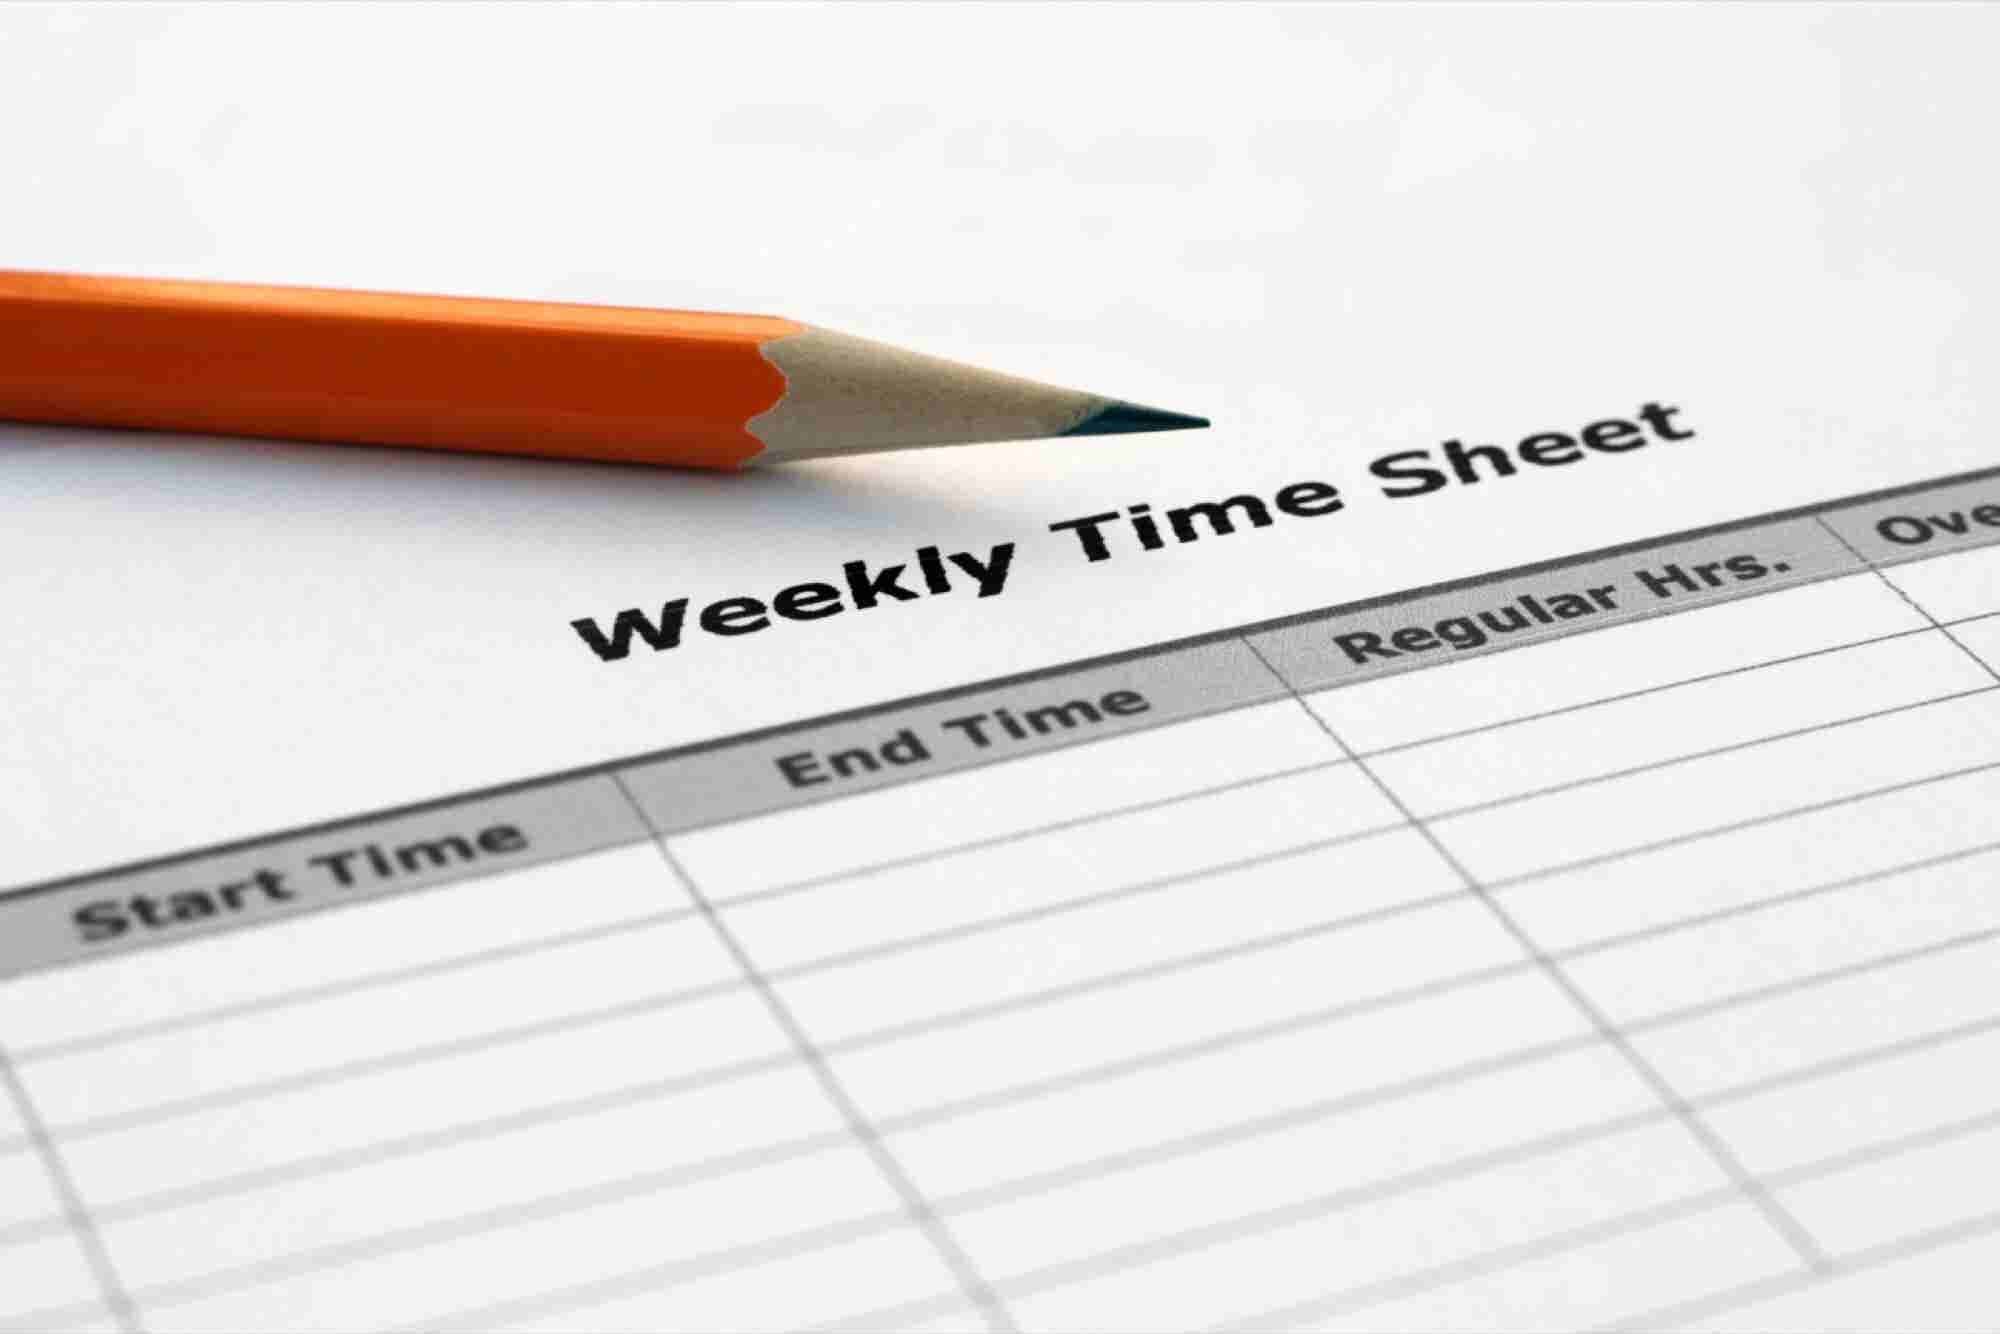 Four Weekend Rituals to Make Your Work Week More Productive